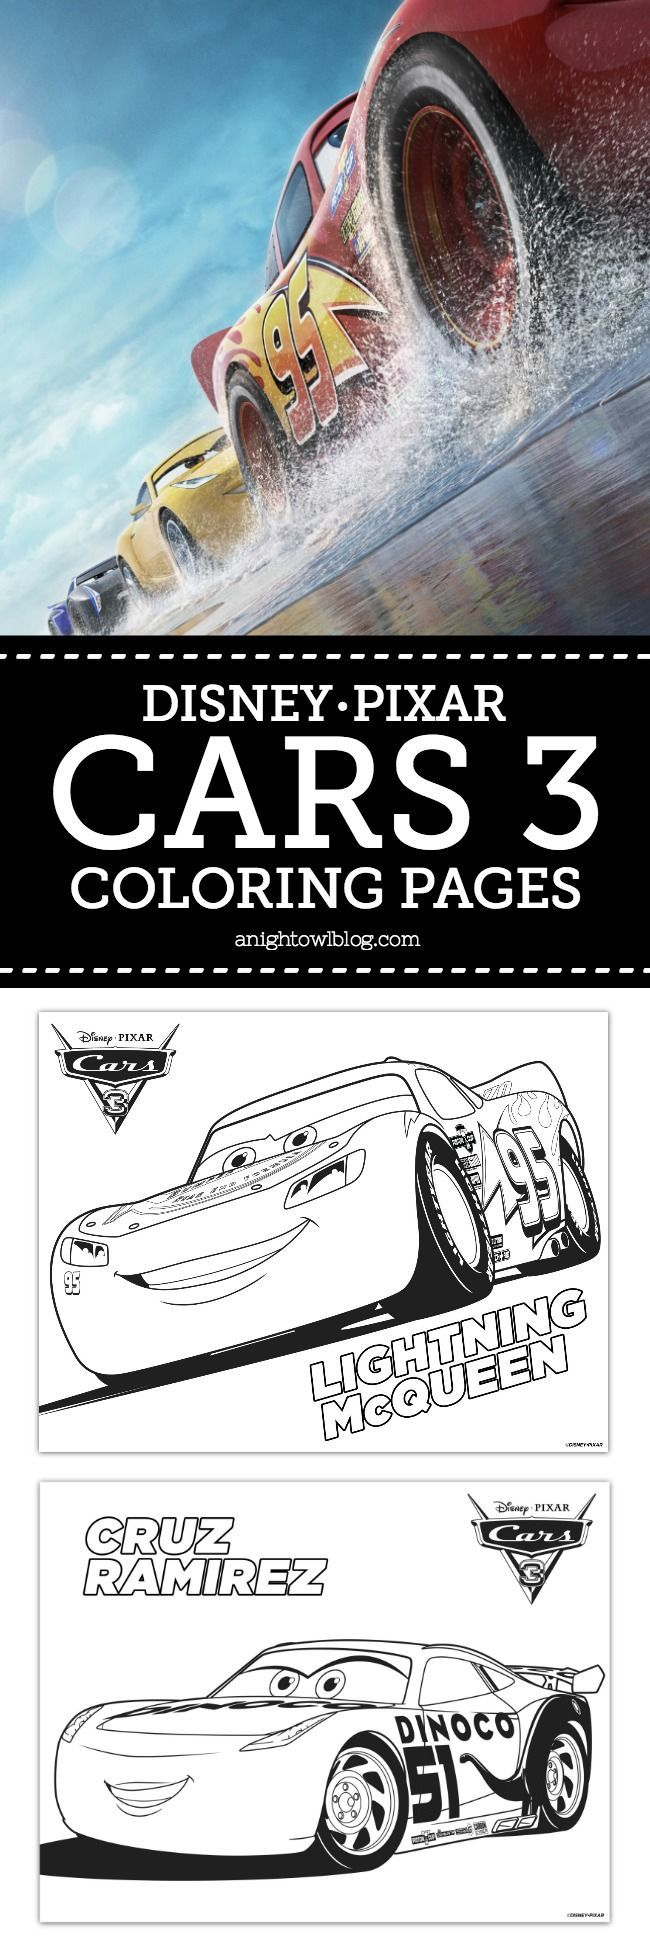 Free printable santa wish list coloring page tickled peach studio - Disney Pixar Cars 3 Coloring Pages